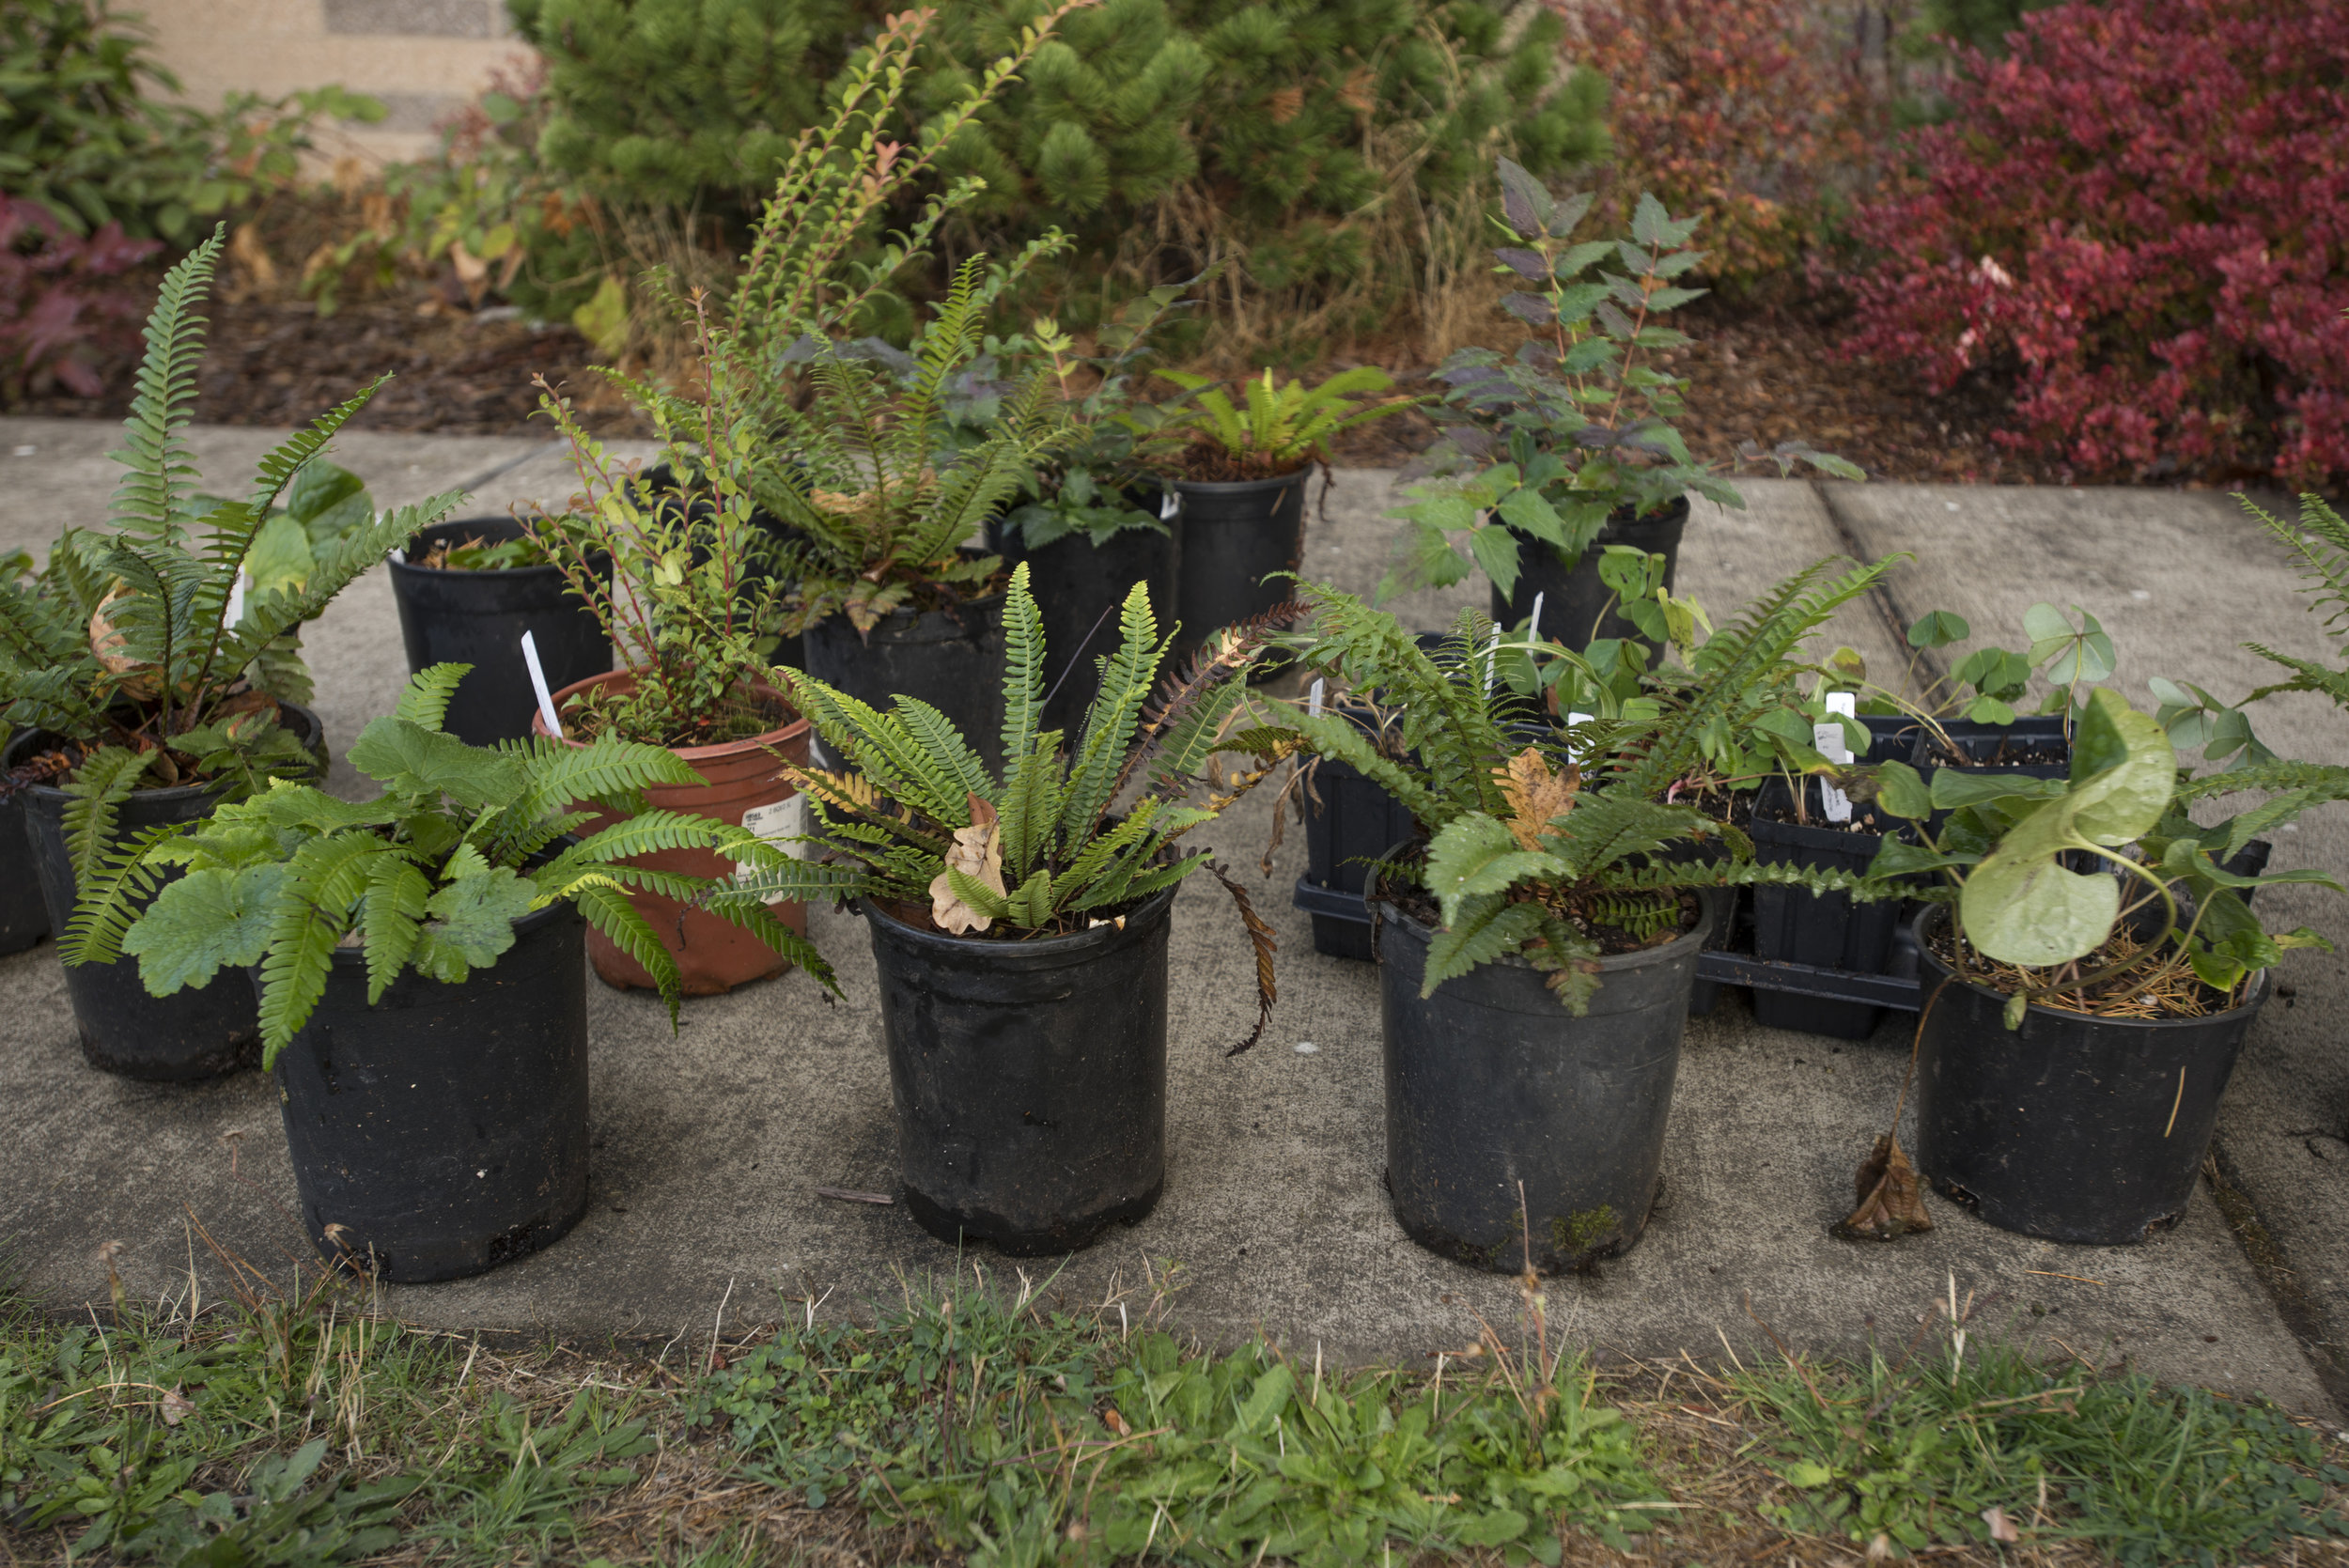 Plants waiting to be planted in a rain garden. Photo © Hannah Letinich